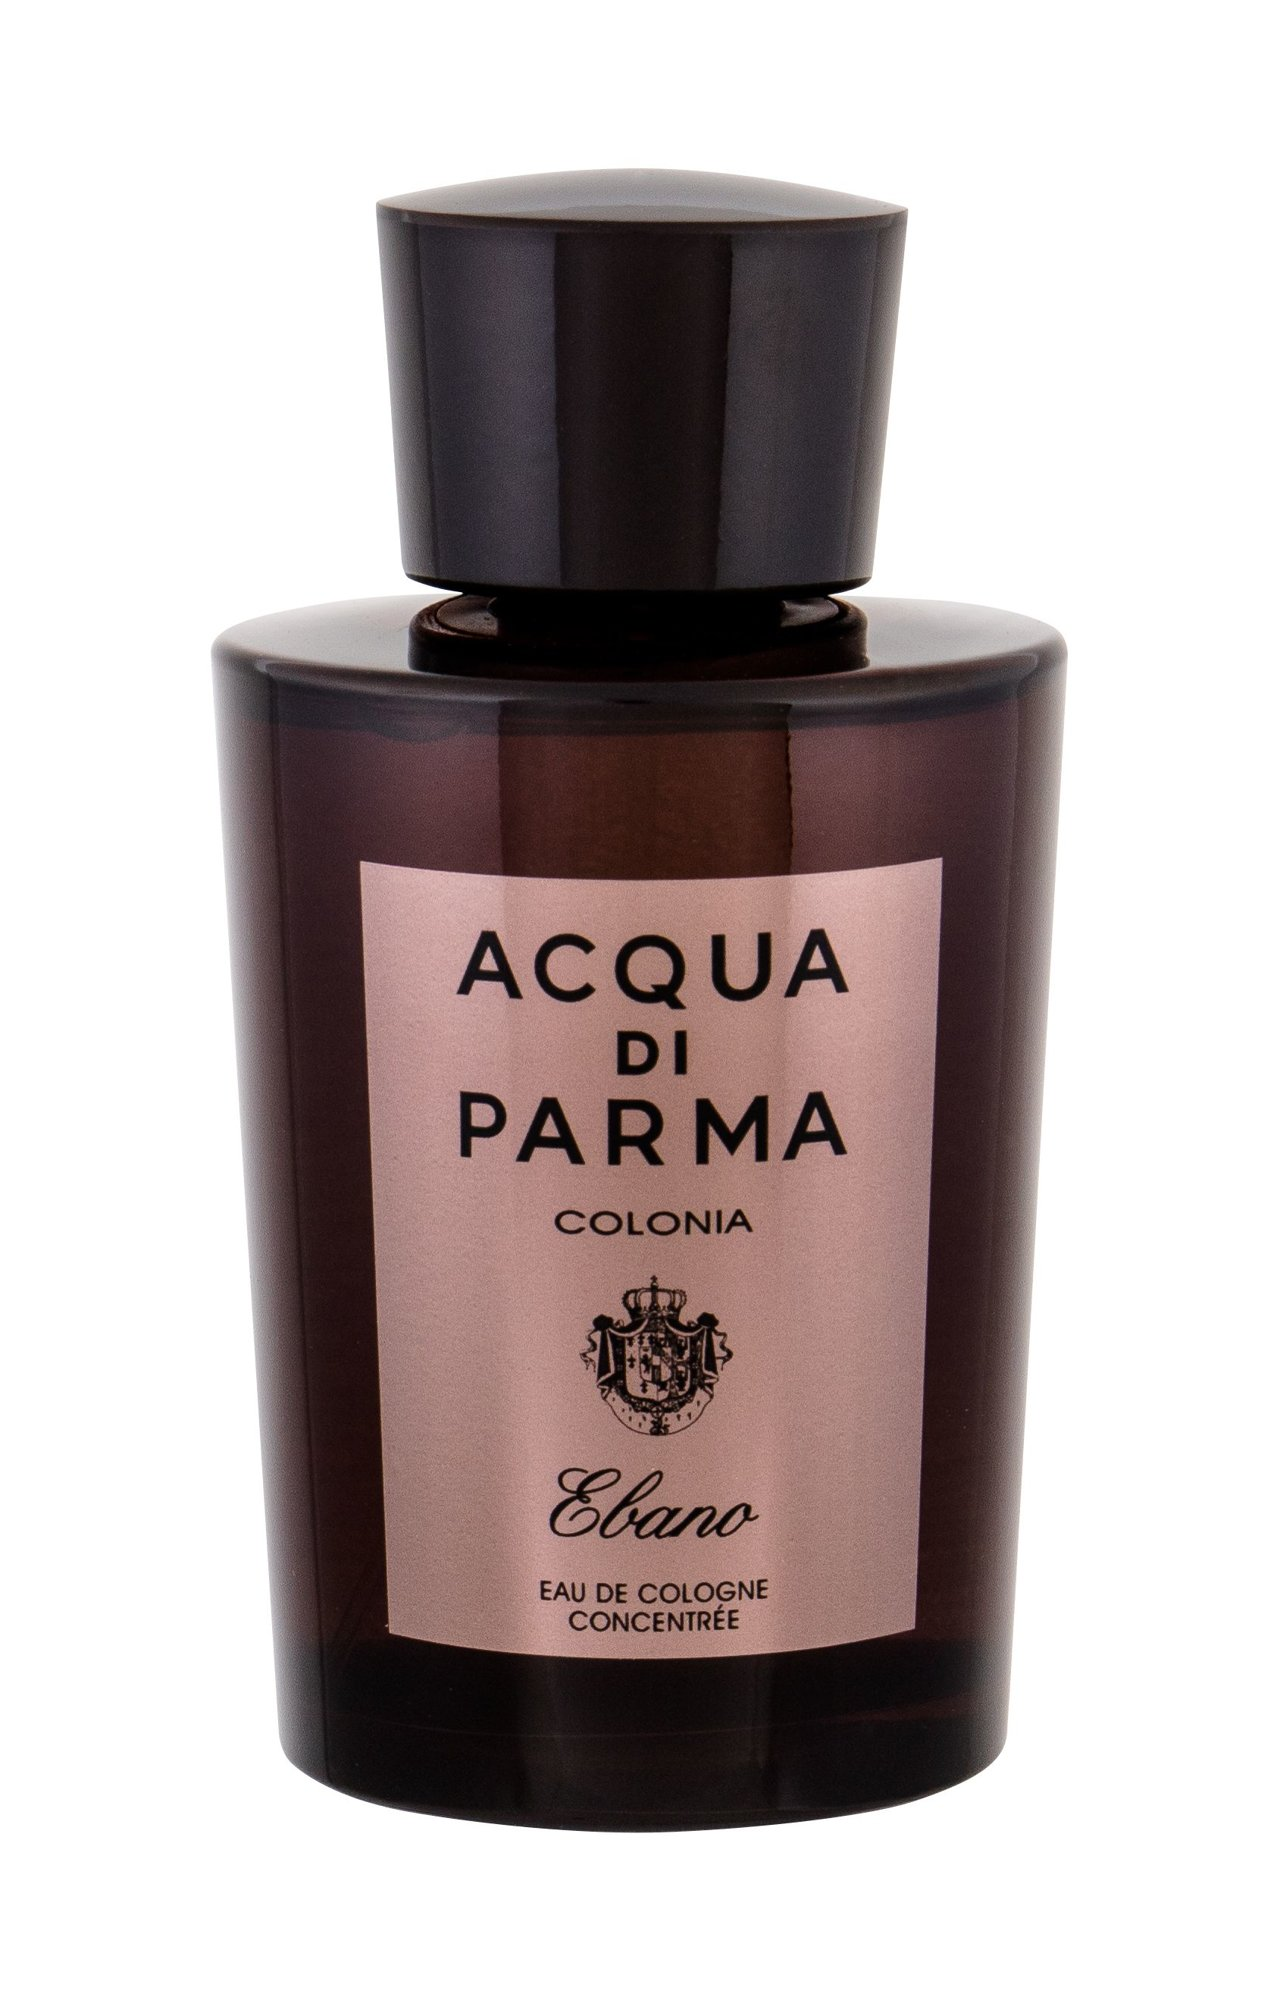 Acqua di Parma Colonia Ebano Eau de Cologne 180ml